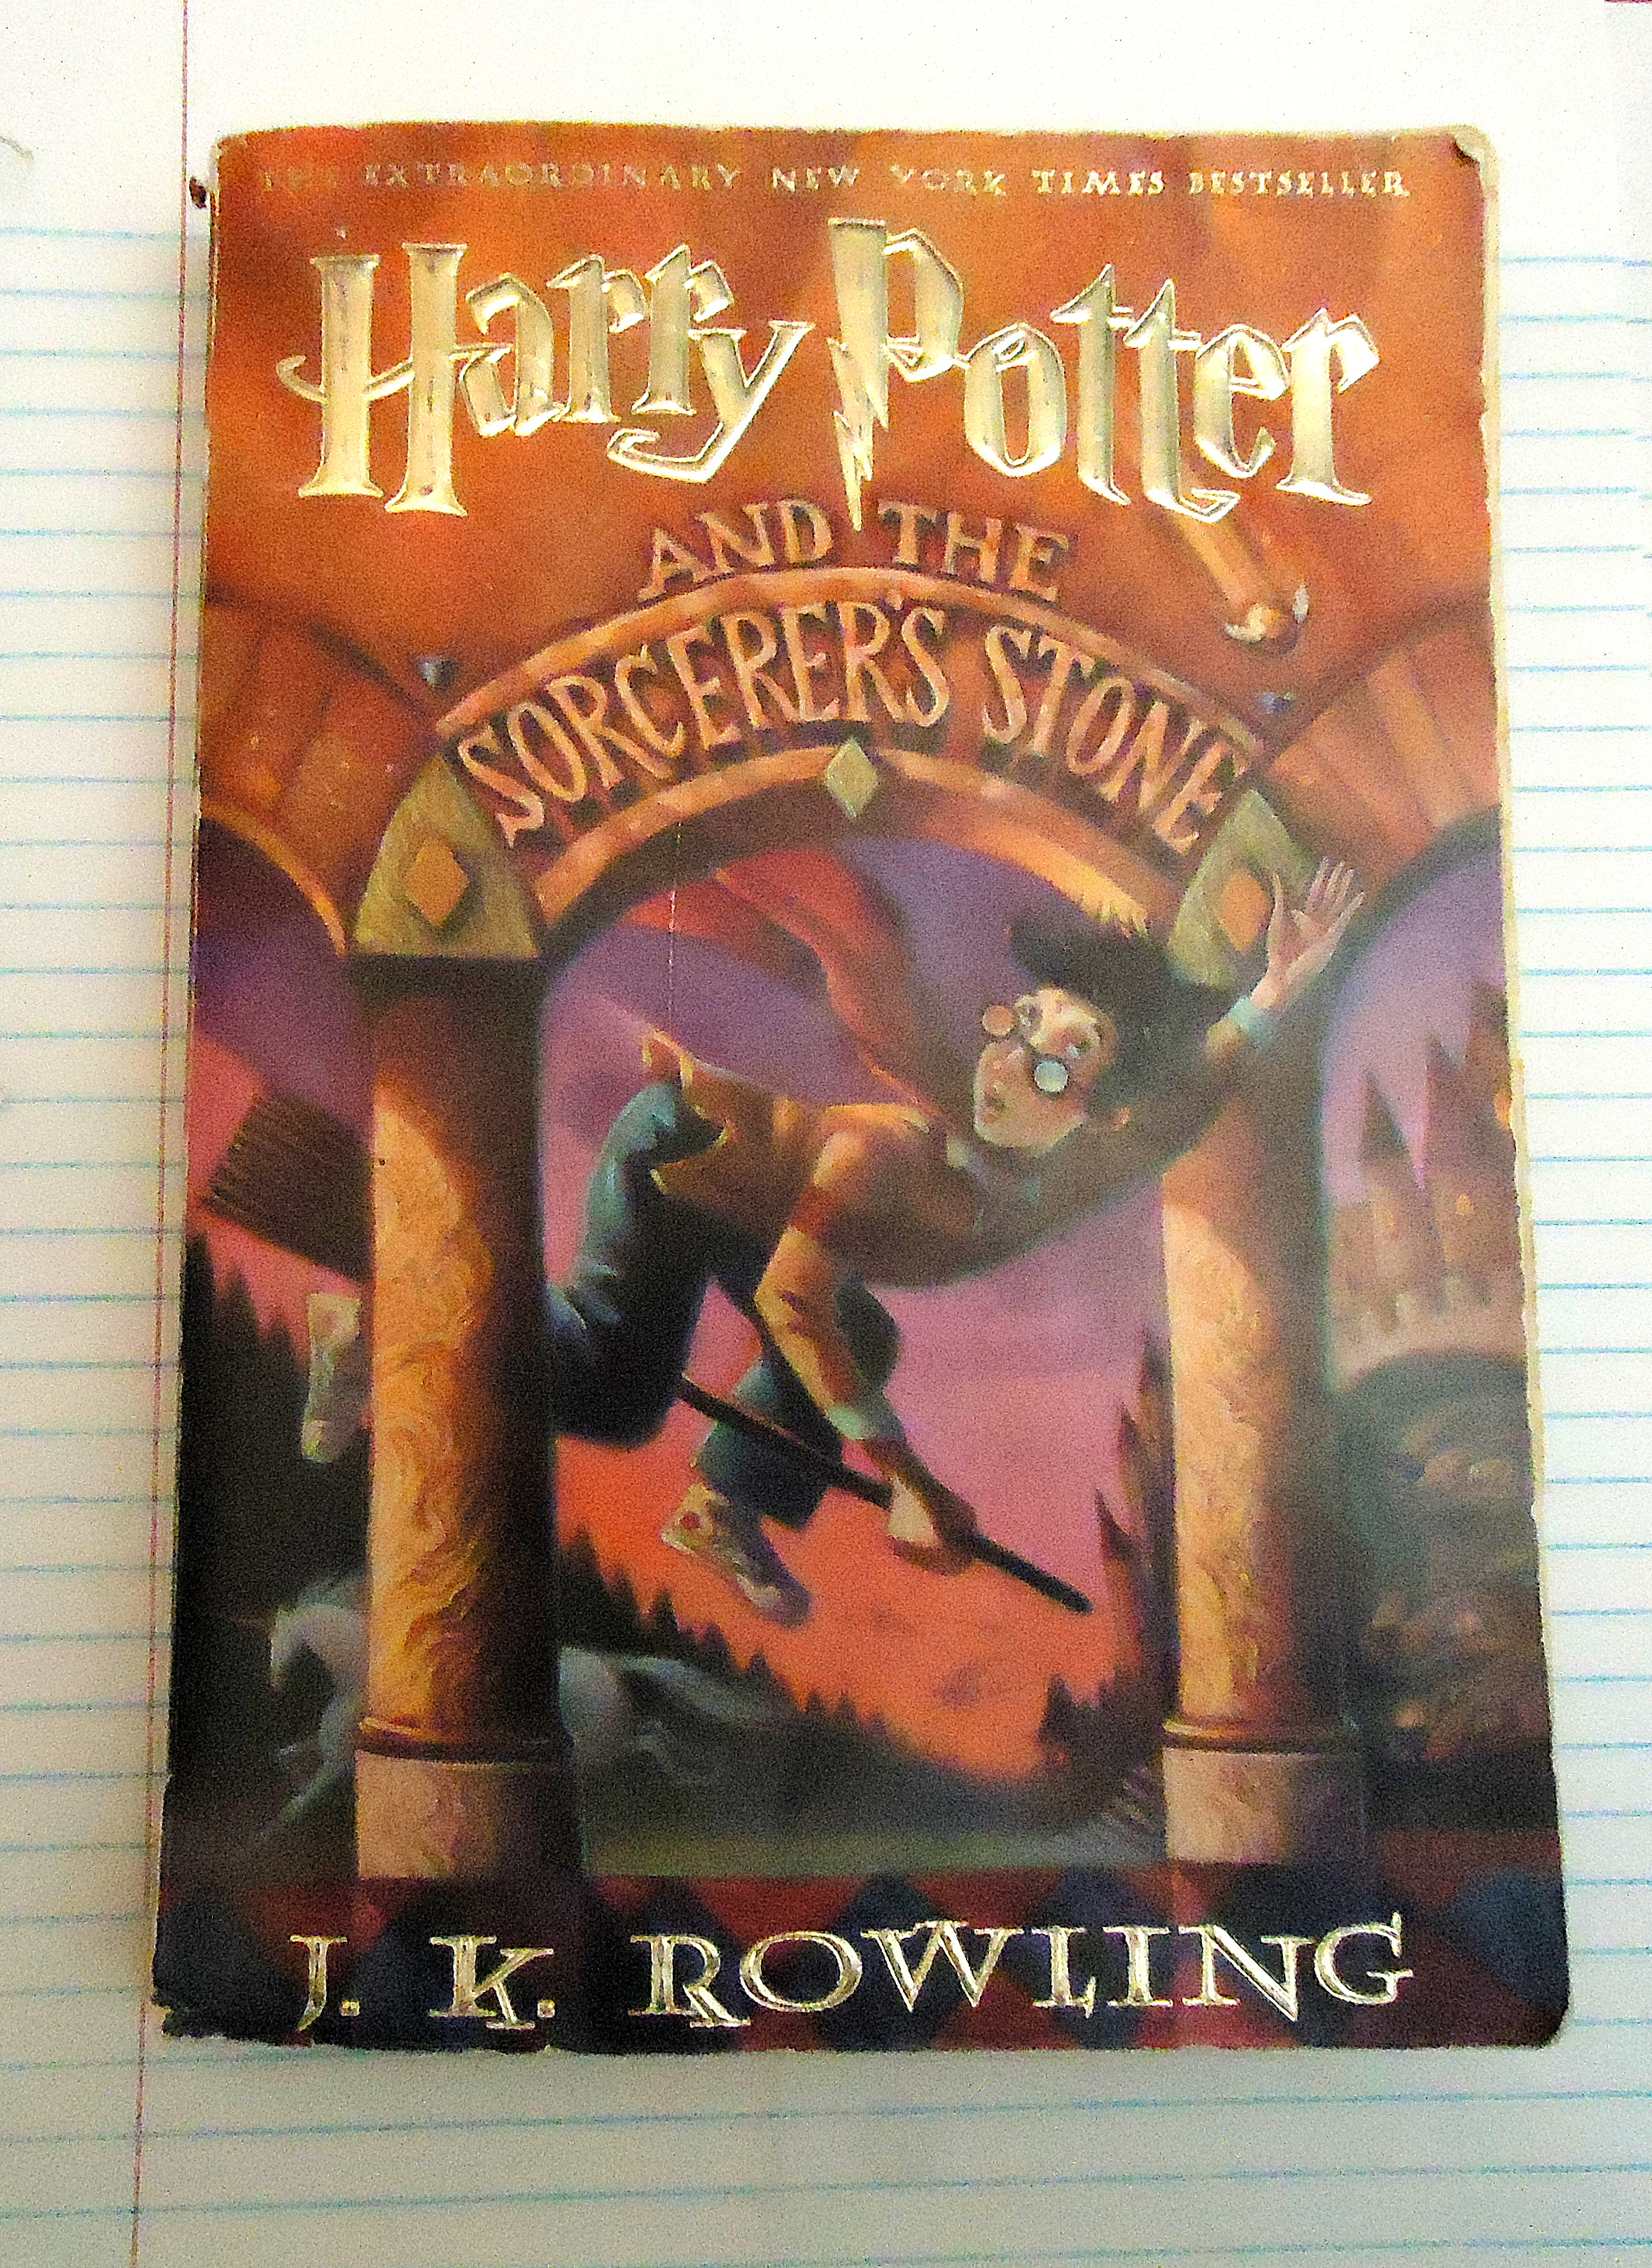 A Tattered Personal Edition Of Harry Potter And The